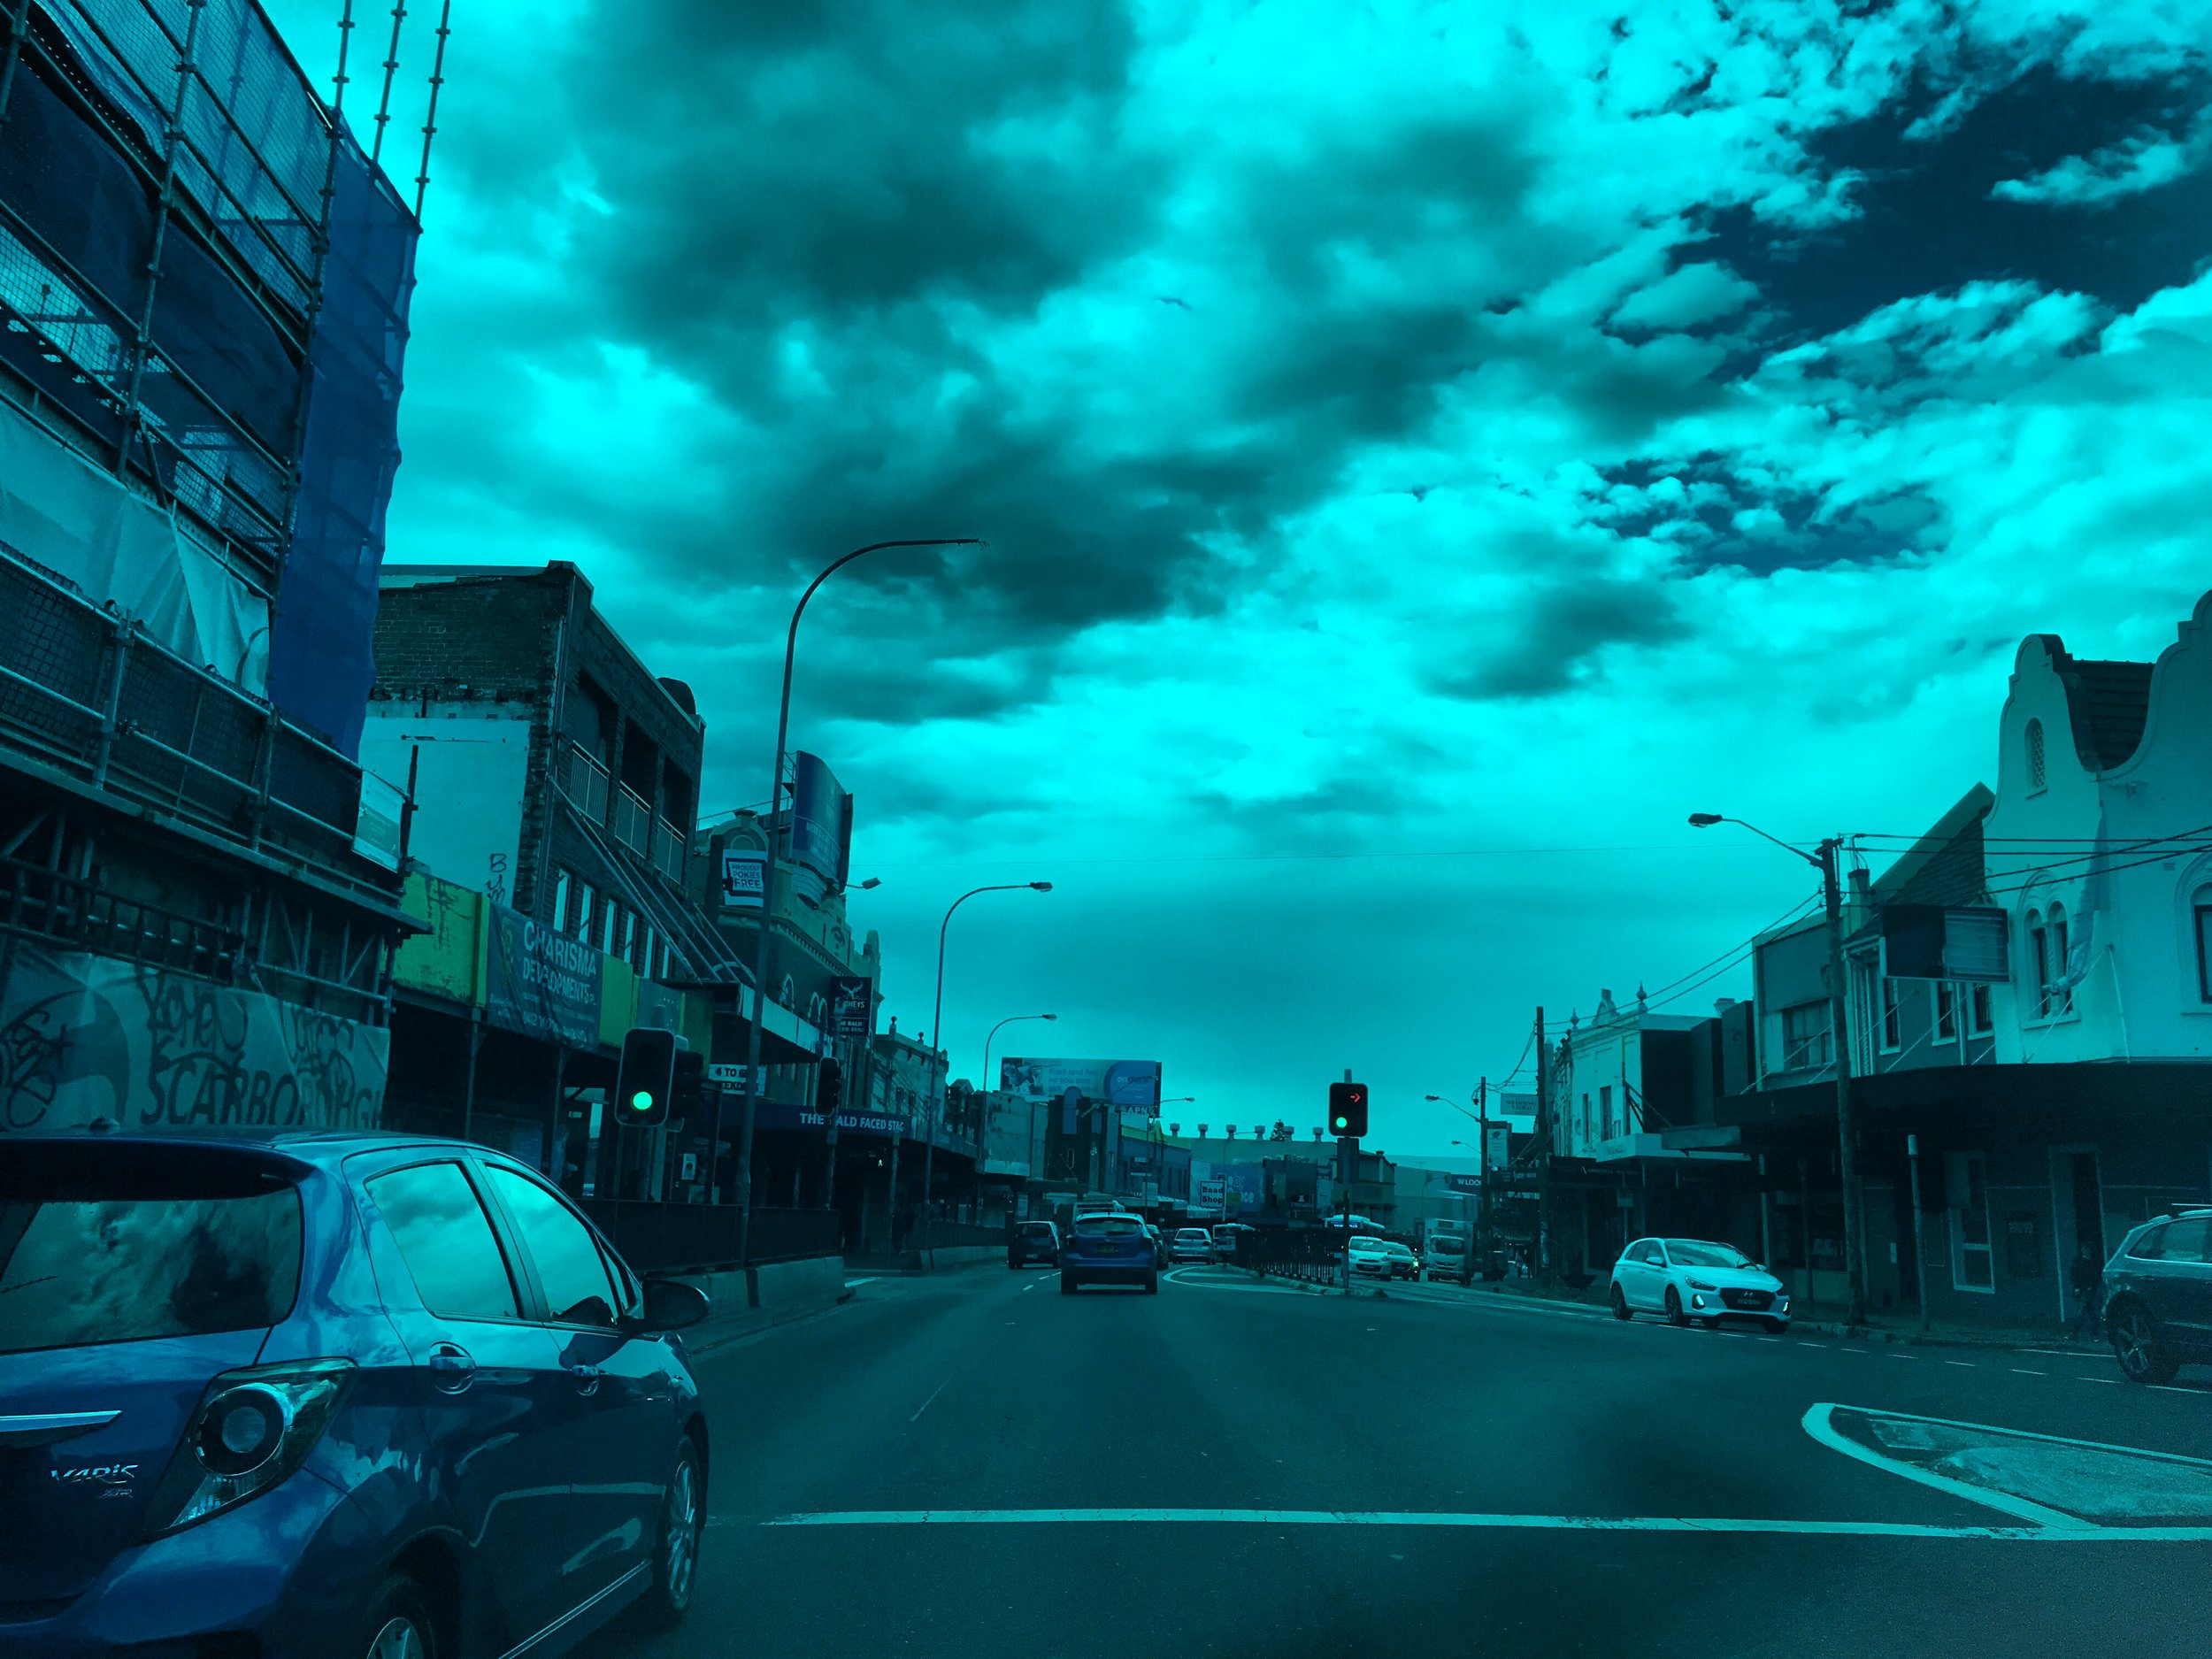 Sydney, Australia street with buildings to left and right and cars in street with teal filter.